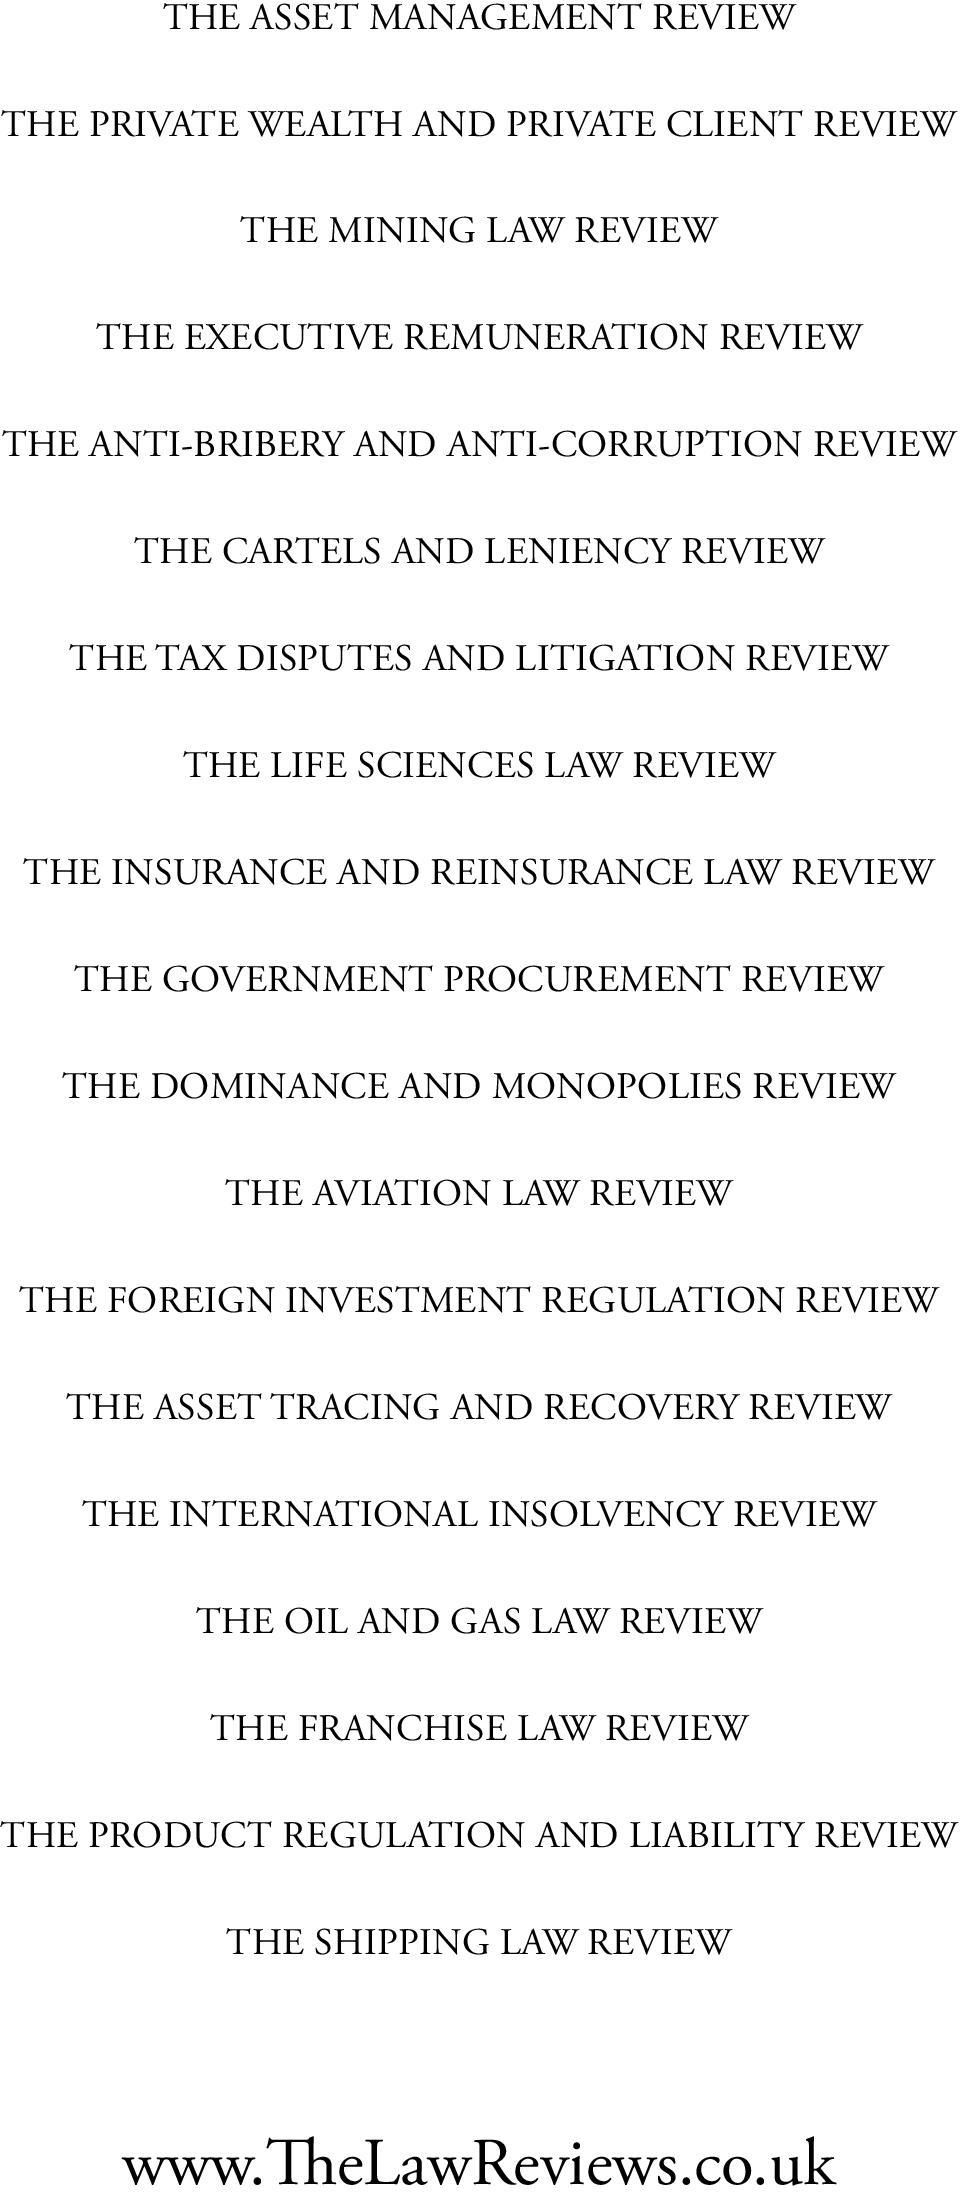 PROCUREMENT REVIEW THE DOMINANCE AND MONOPOLIES REVIEW THE AVIATION LAW REVIEW THE FOREIGN INVESTMENT REGULATION REVIEW THE ASSET TRACING AND RECOVERY REVIEW THE